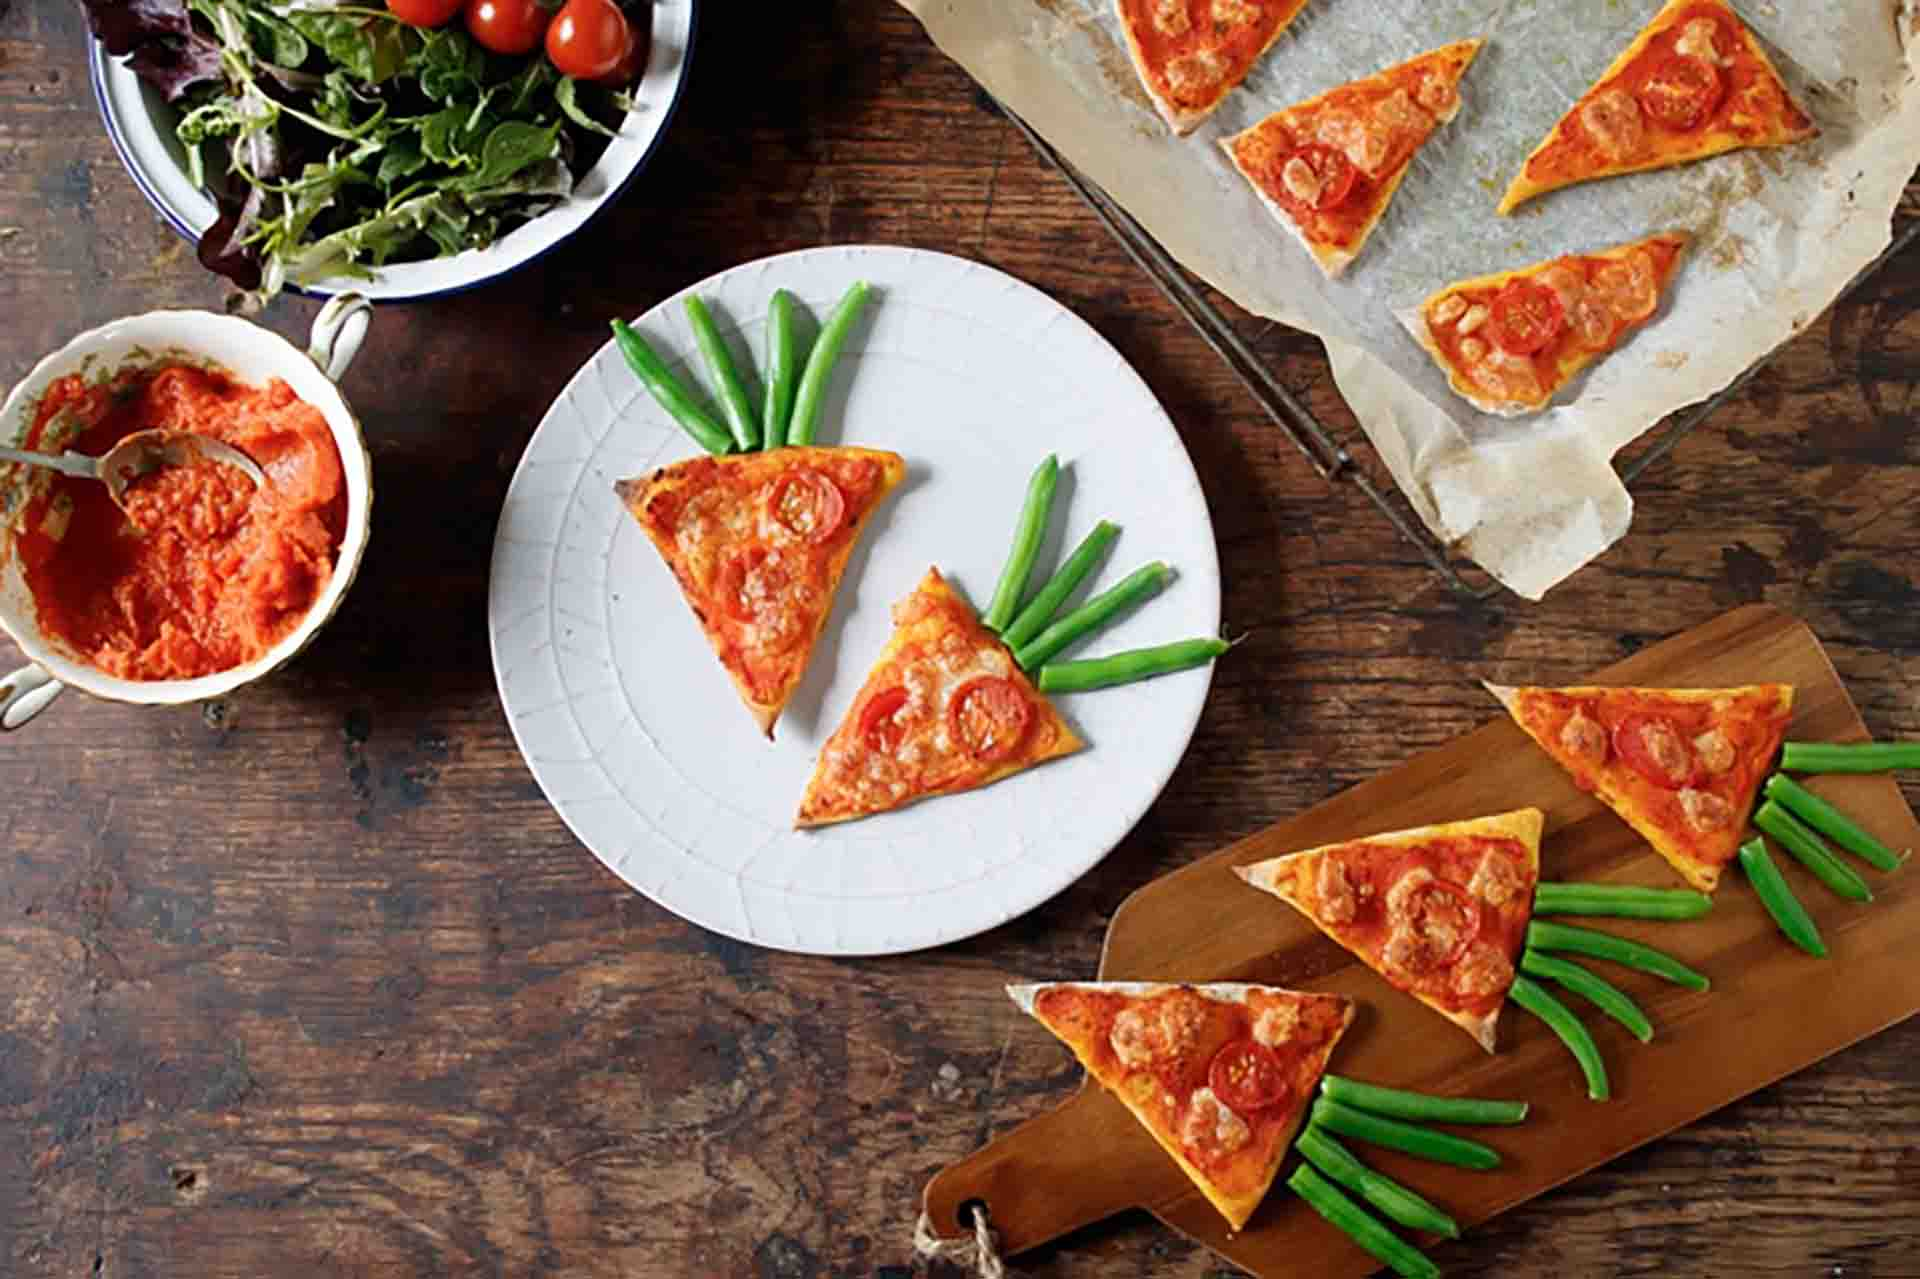 Two slices of carrot pizza on a plate sitting on a wooden table with more pizza on wooden boards.